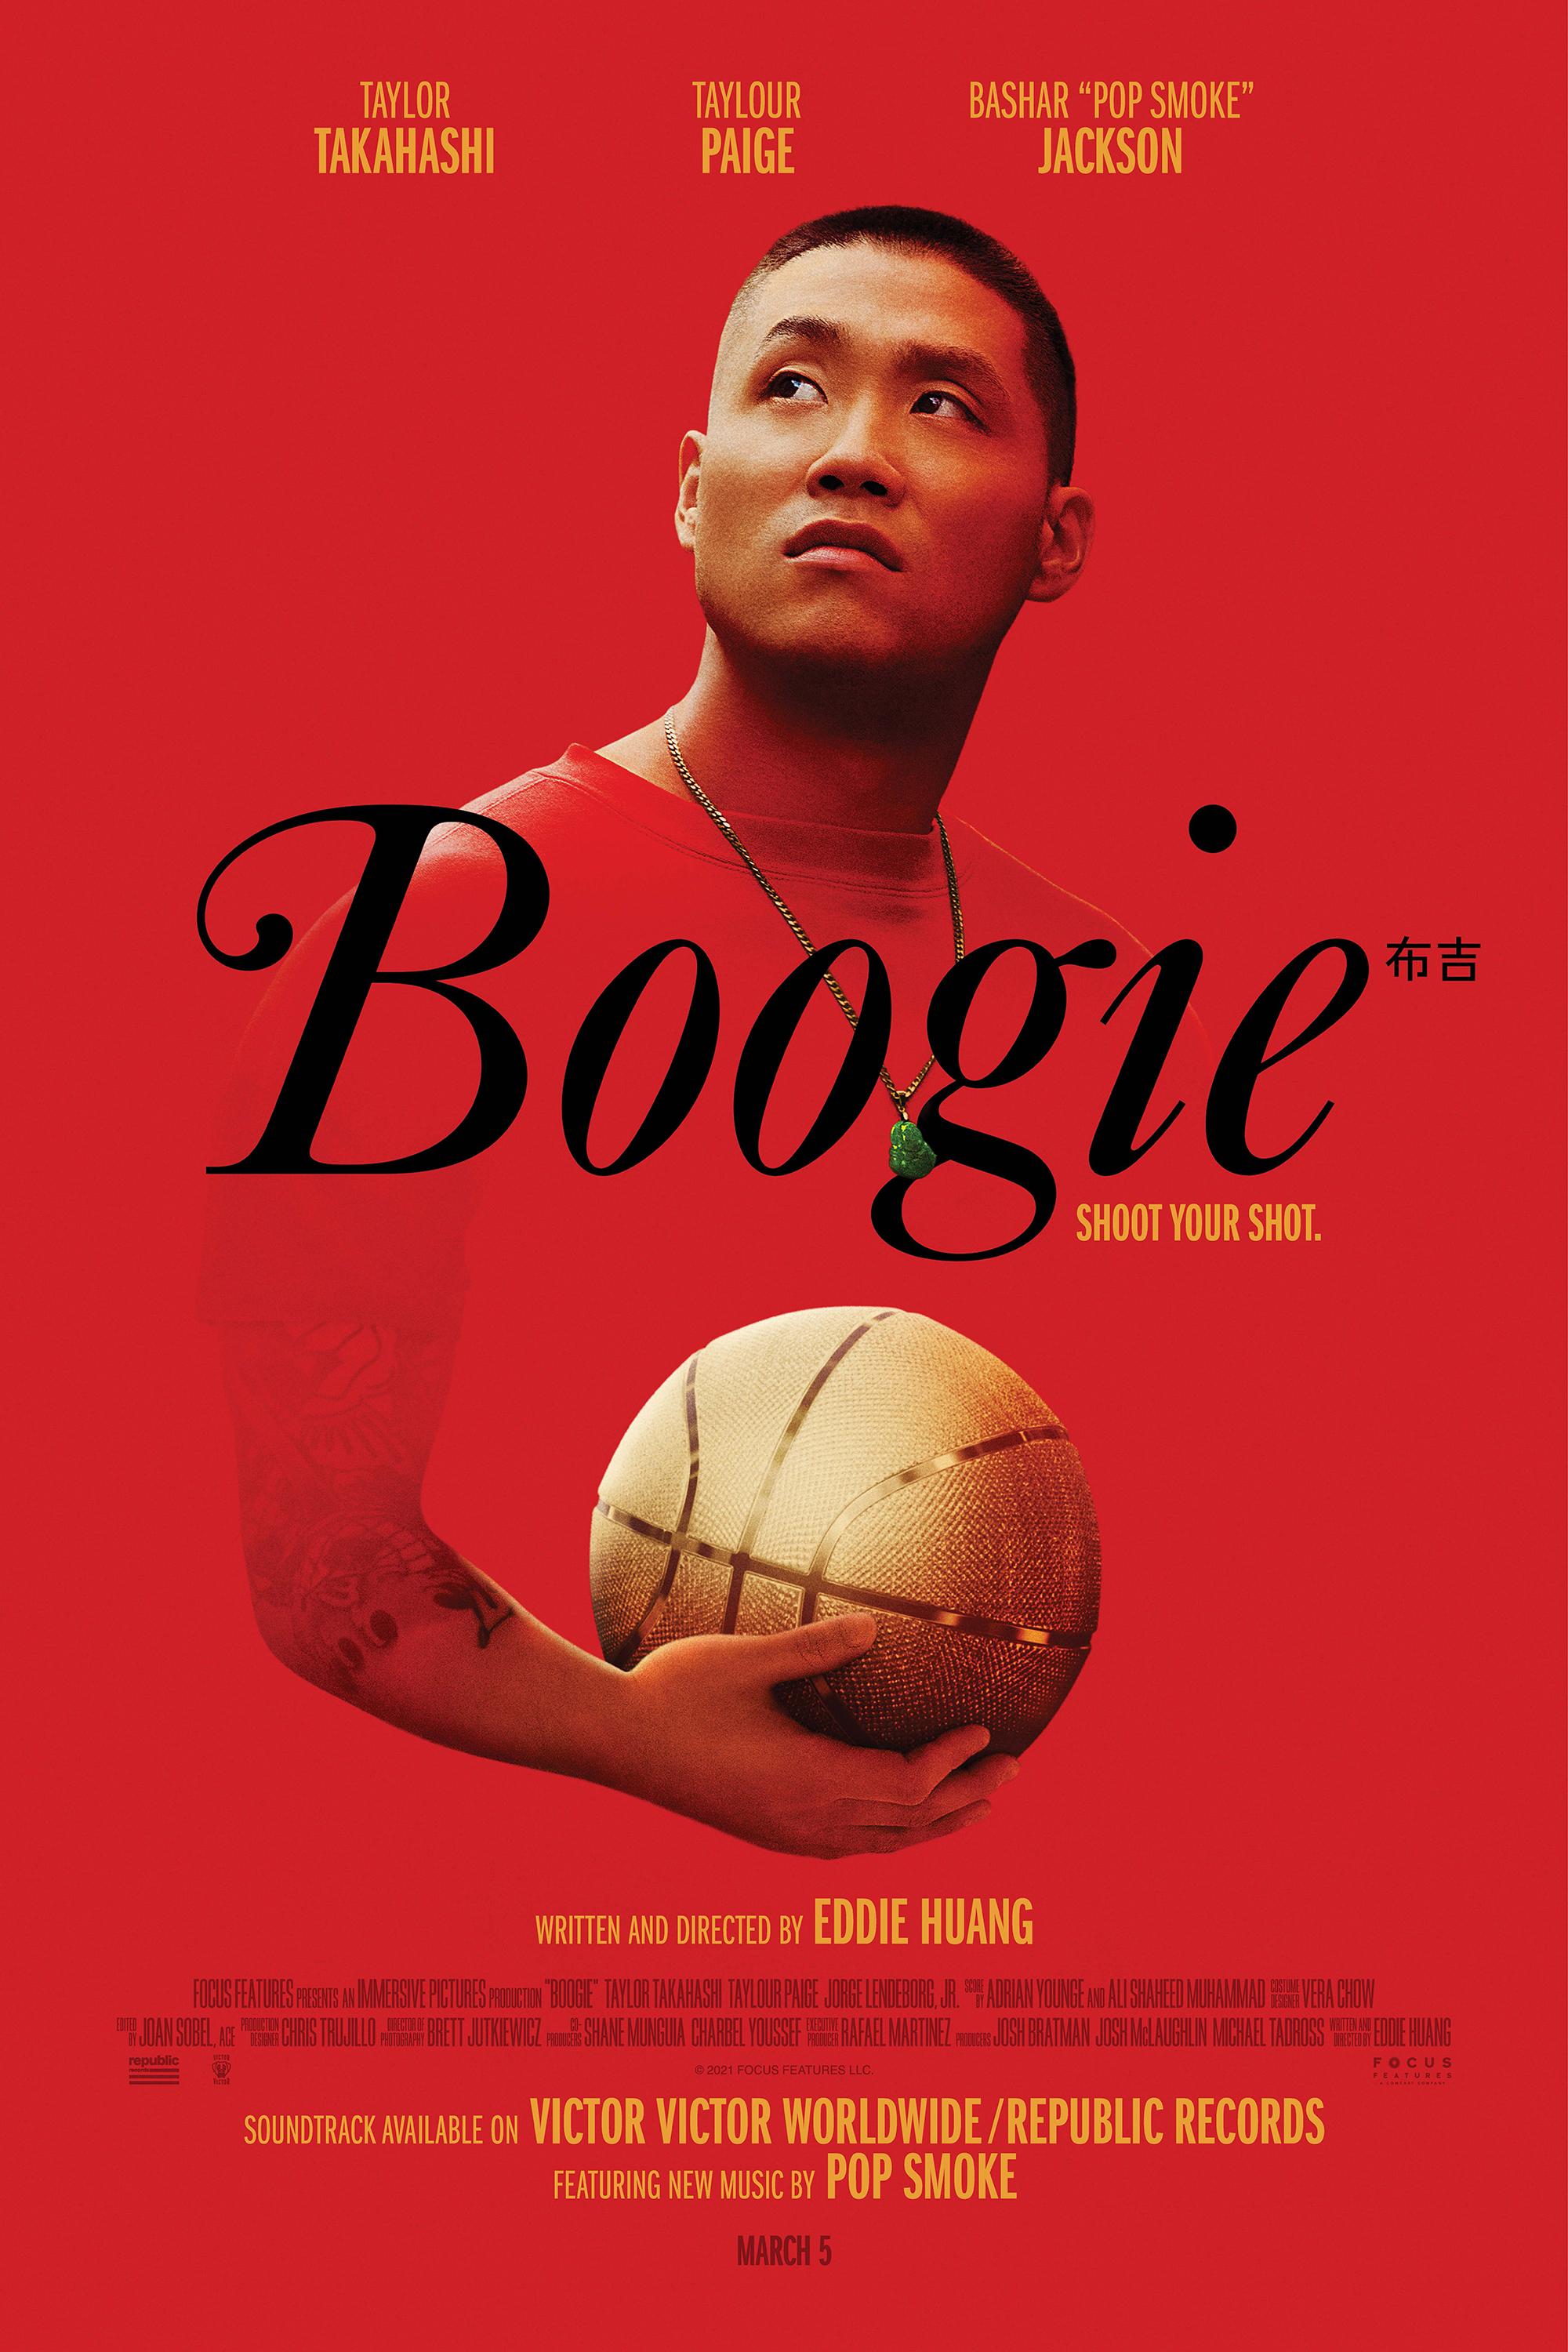 Still of Boogie